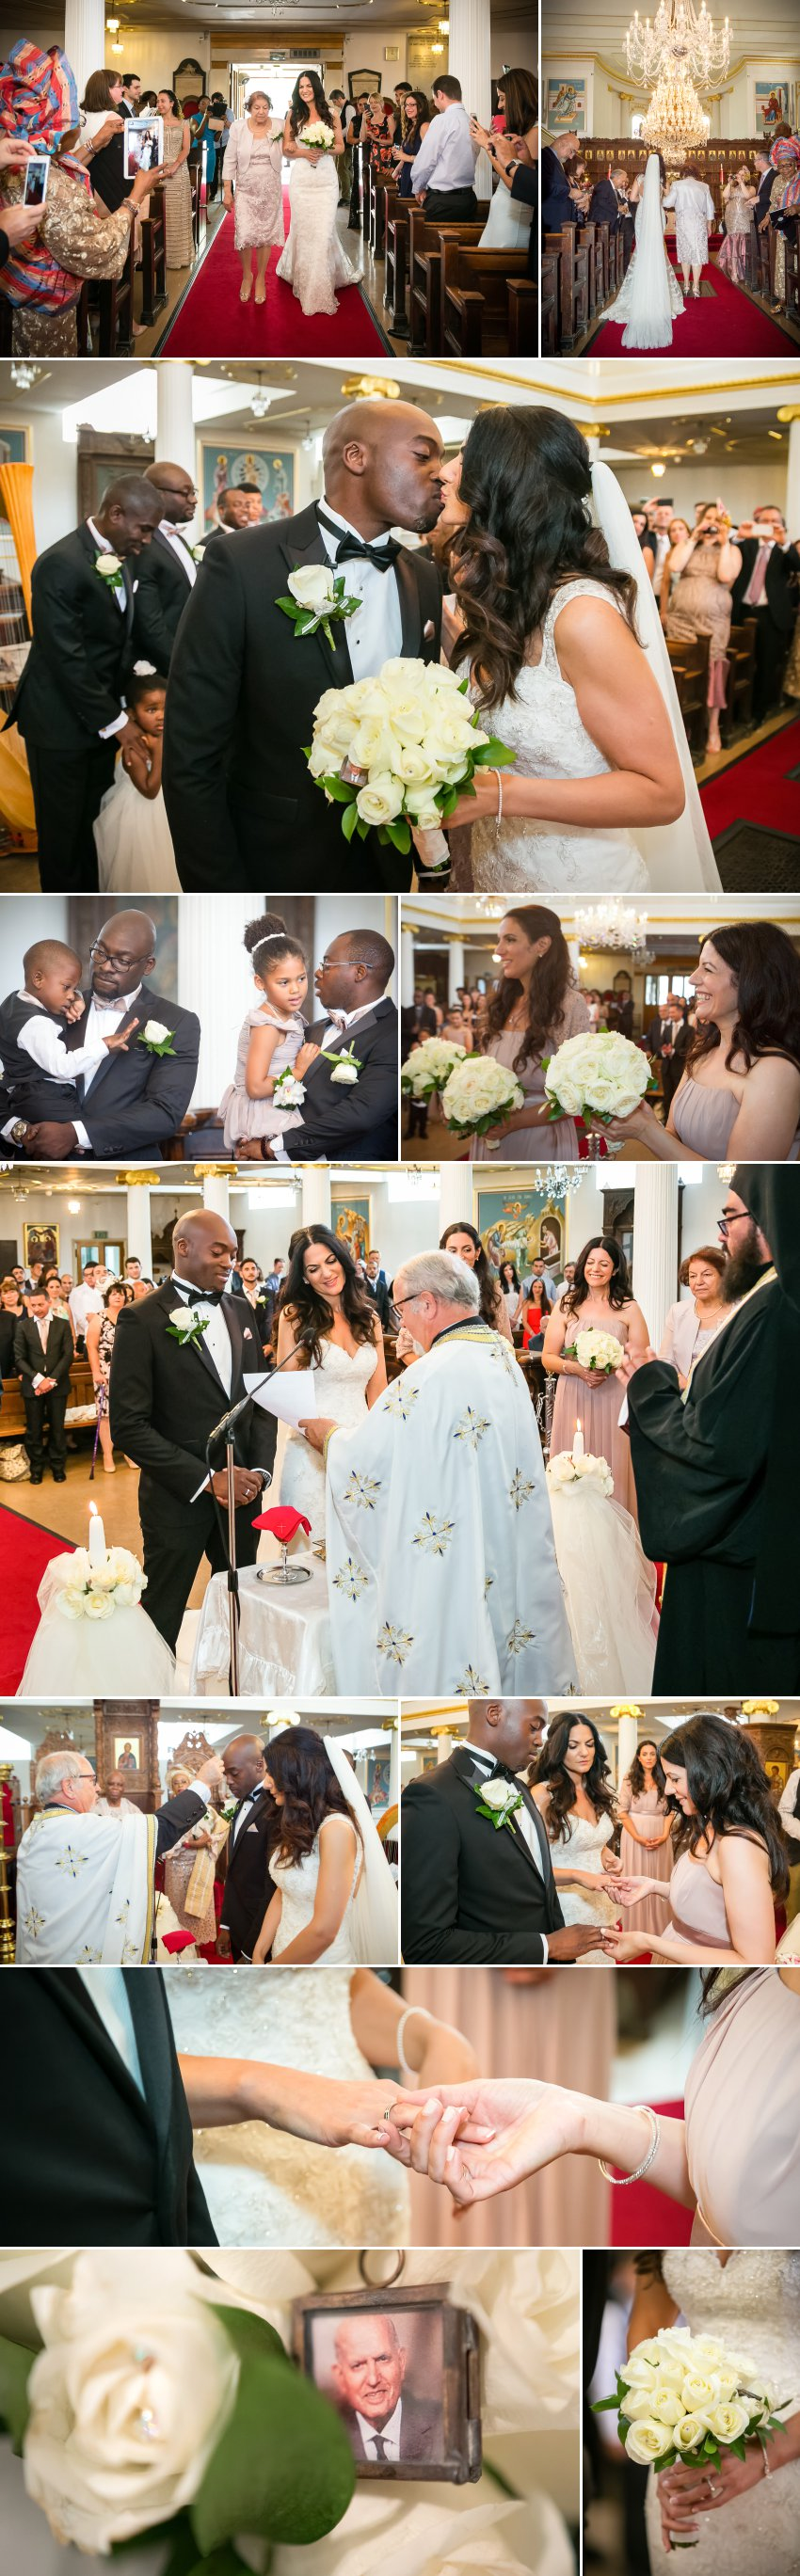 08 Nigerian wedding at Rosewood Hotel